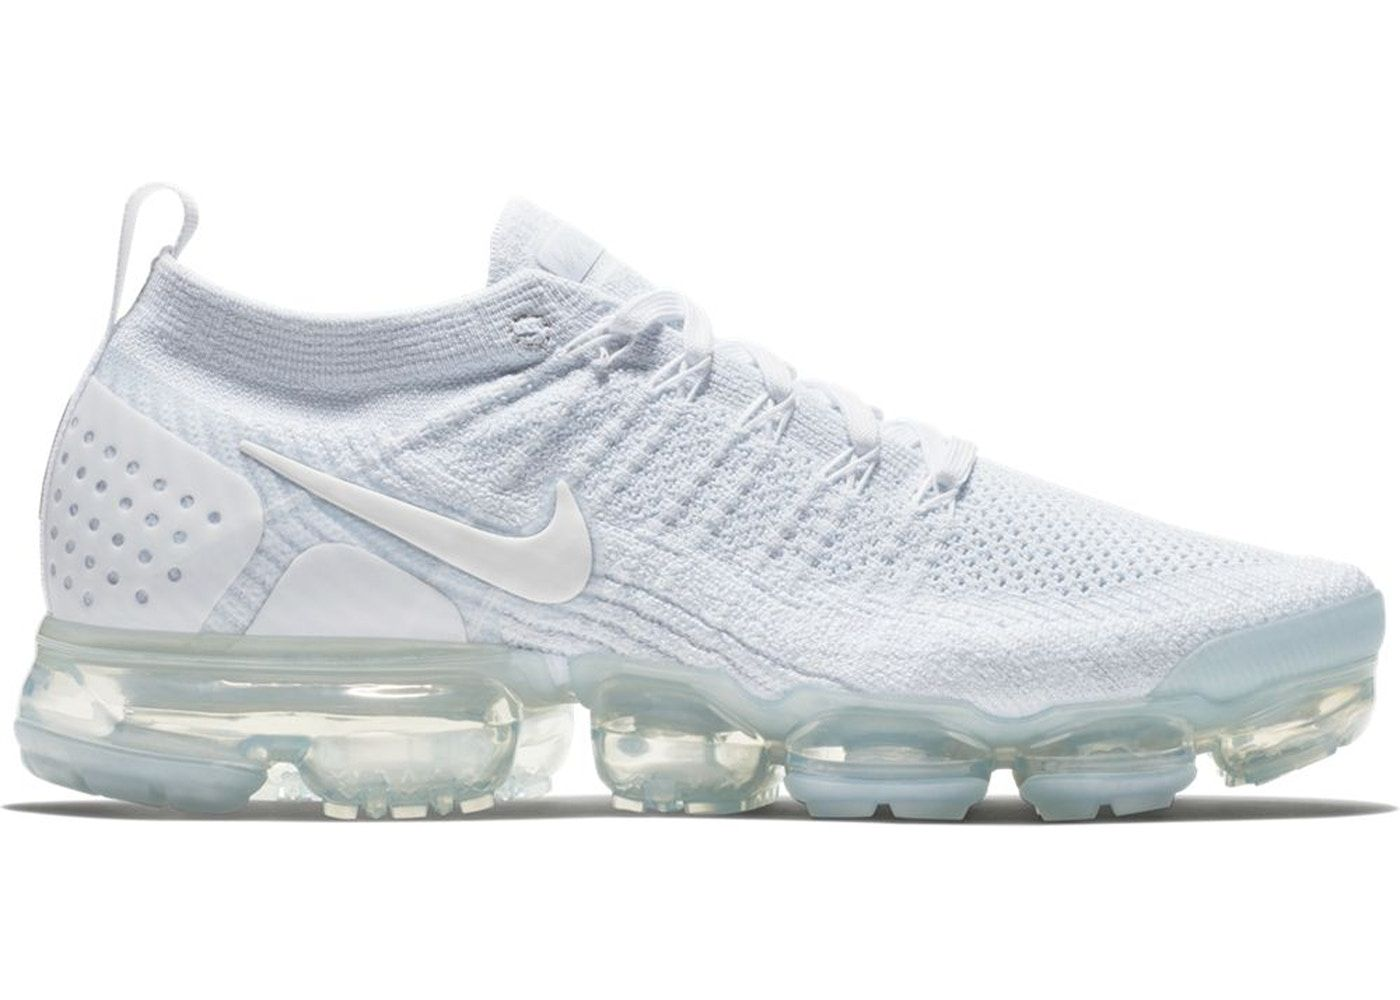 Nike VaporMax Flyknit 2 White Pure Platinum in 2019 | Shoes